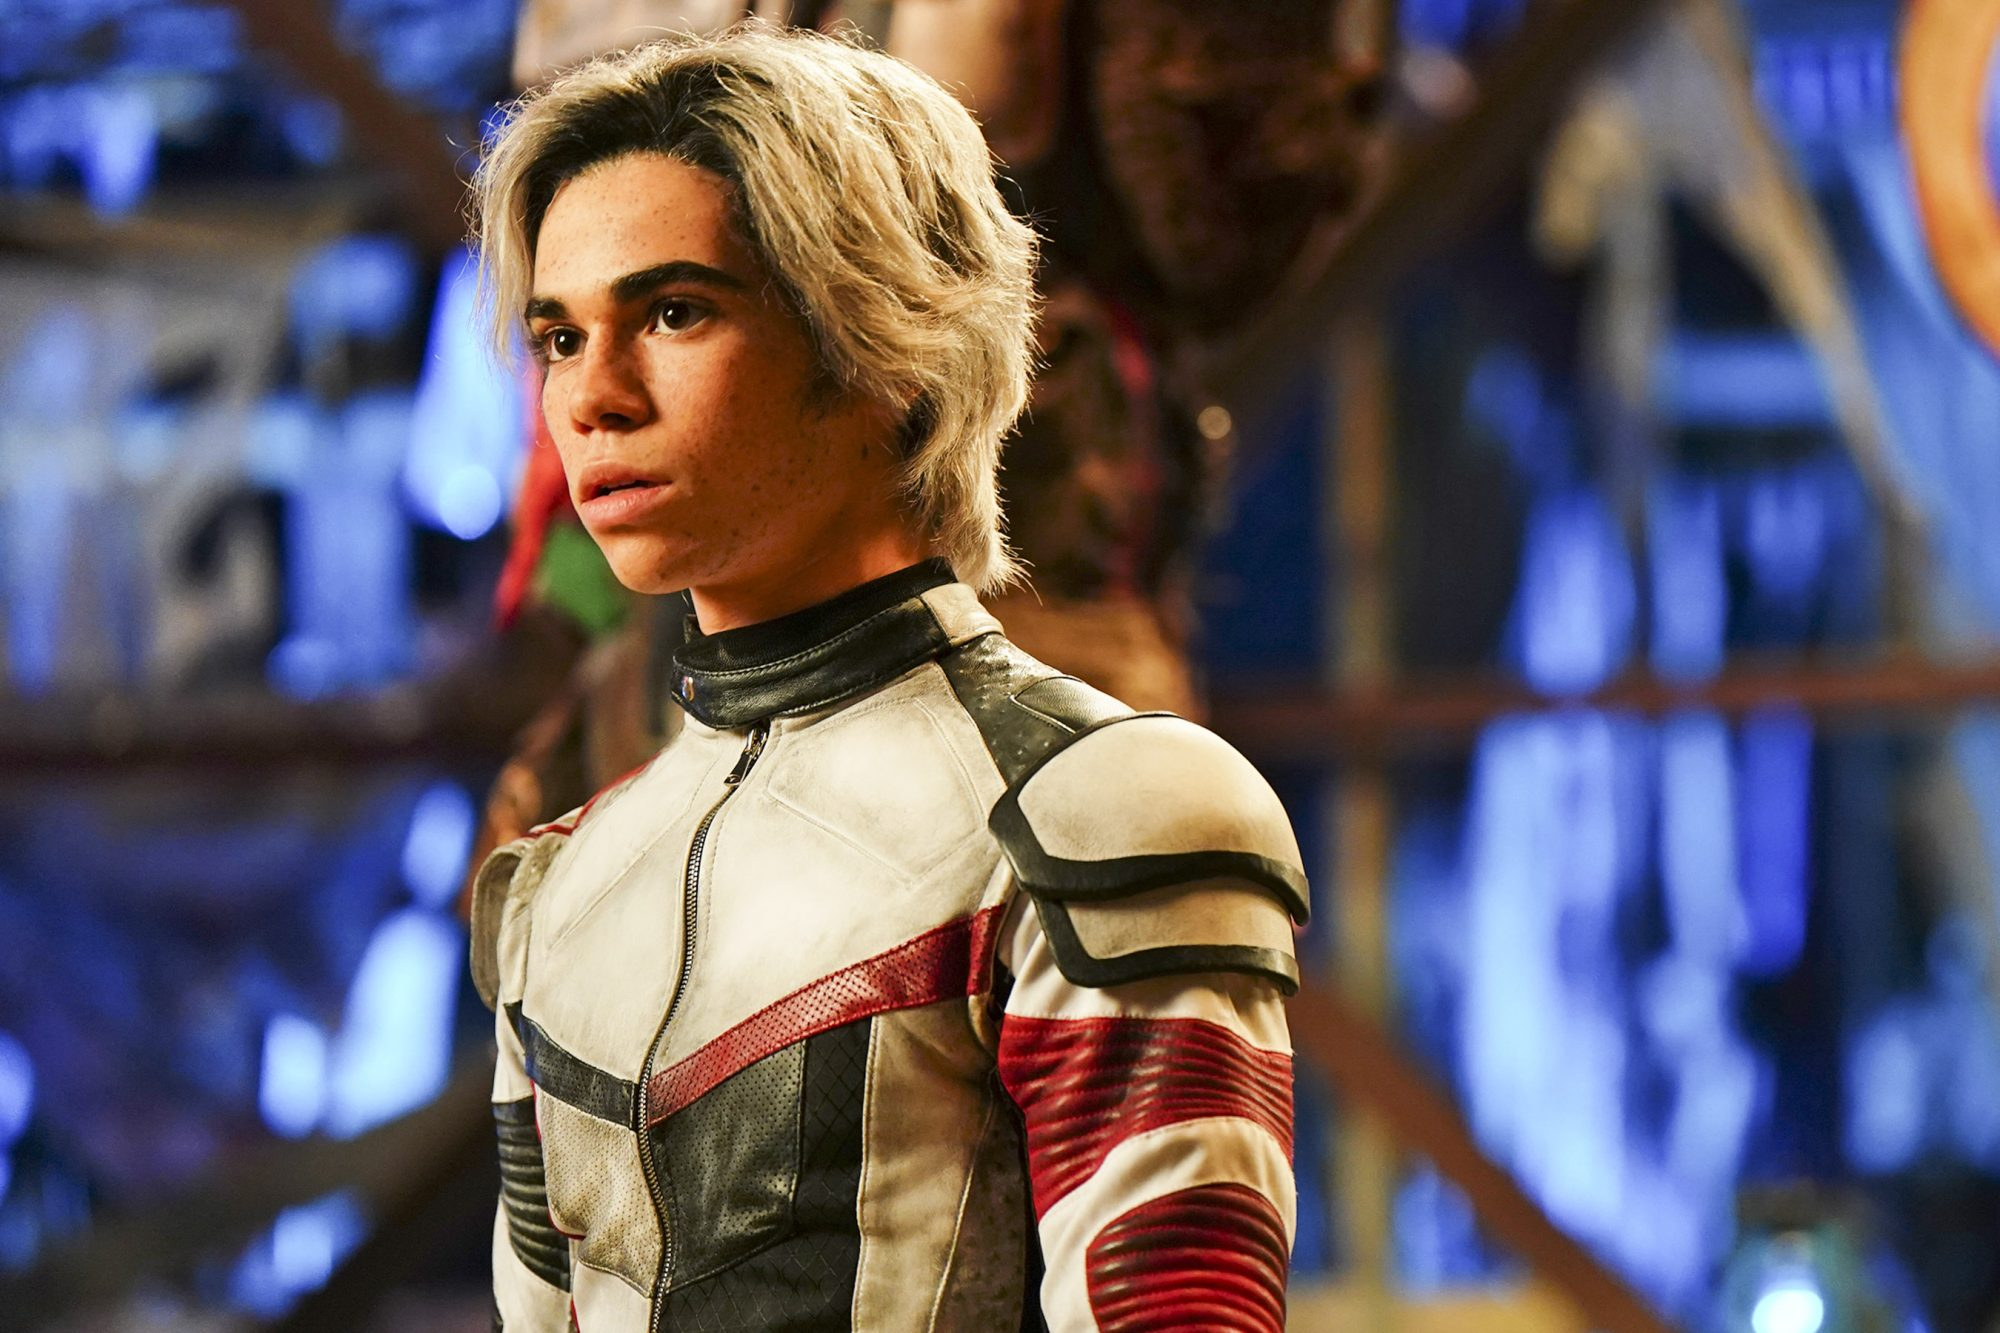 "DESCENDANTS 3 - In this highly anticipated trequel about the sons and daughters of Disney's most infamous villains, Mal and the villain kids (VKs) must save Auradon from an evil threat. ""Descendants 3"" will debut summer 2019 on Disney Channel. (Disney Channel/David Bukach) CAMERON BOYCE"